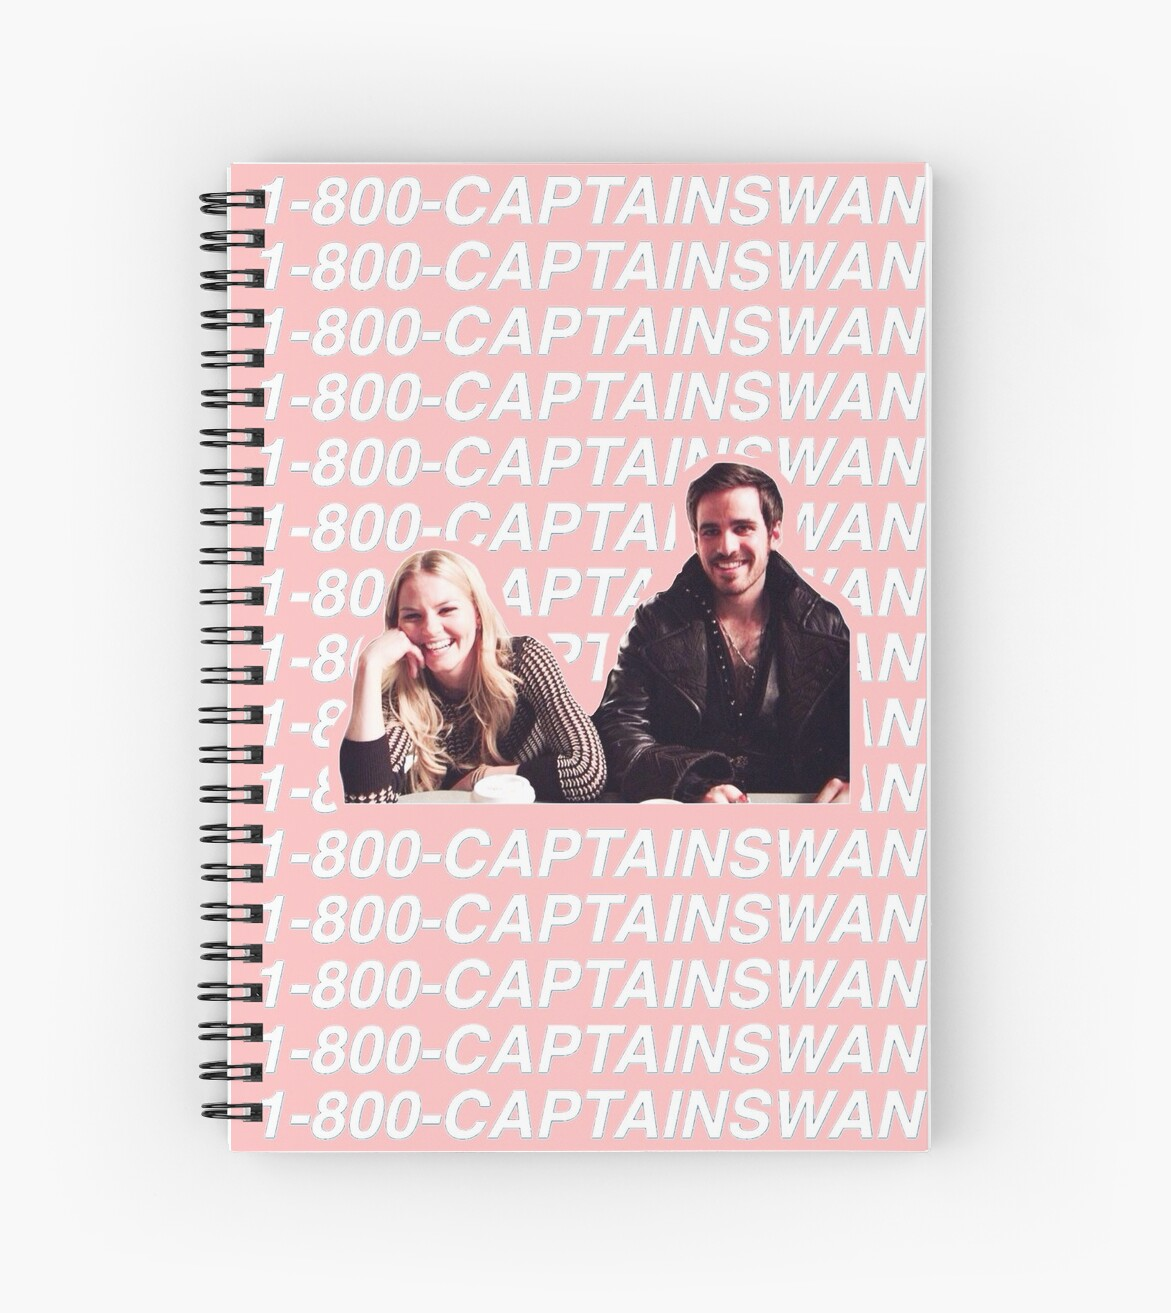 73. 1-800-HOTLINE/CAPTAINSWAN STYLE by danielasmerch